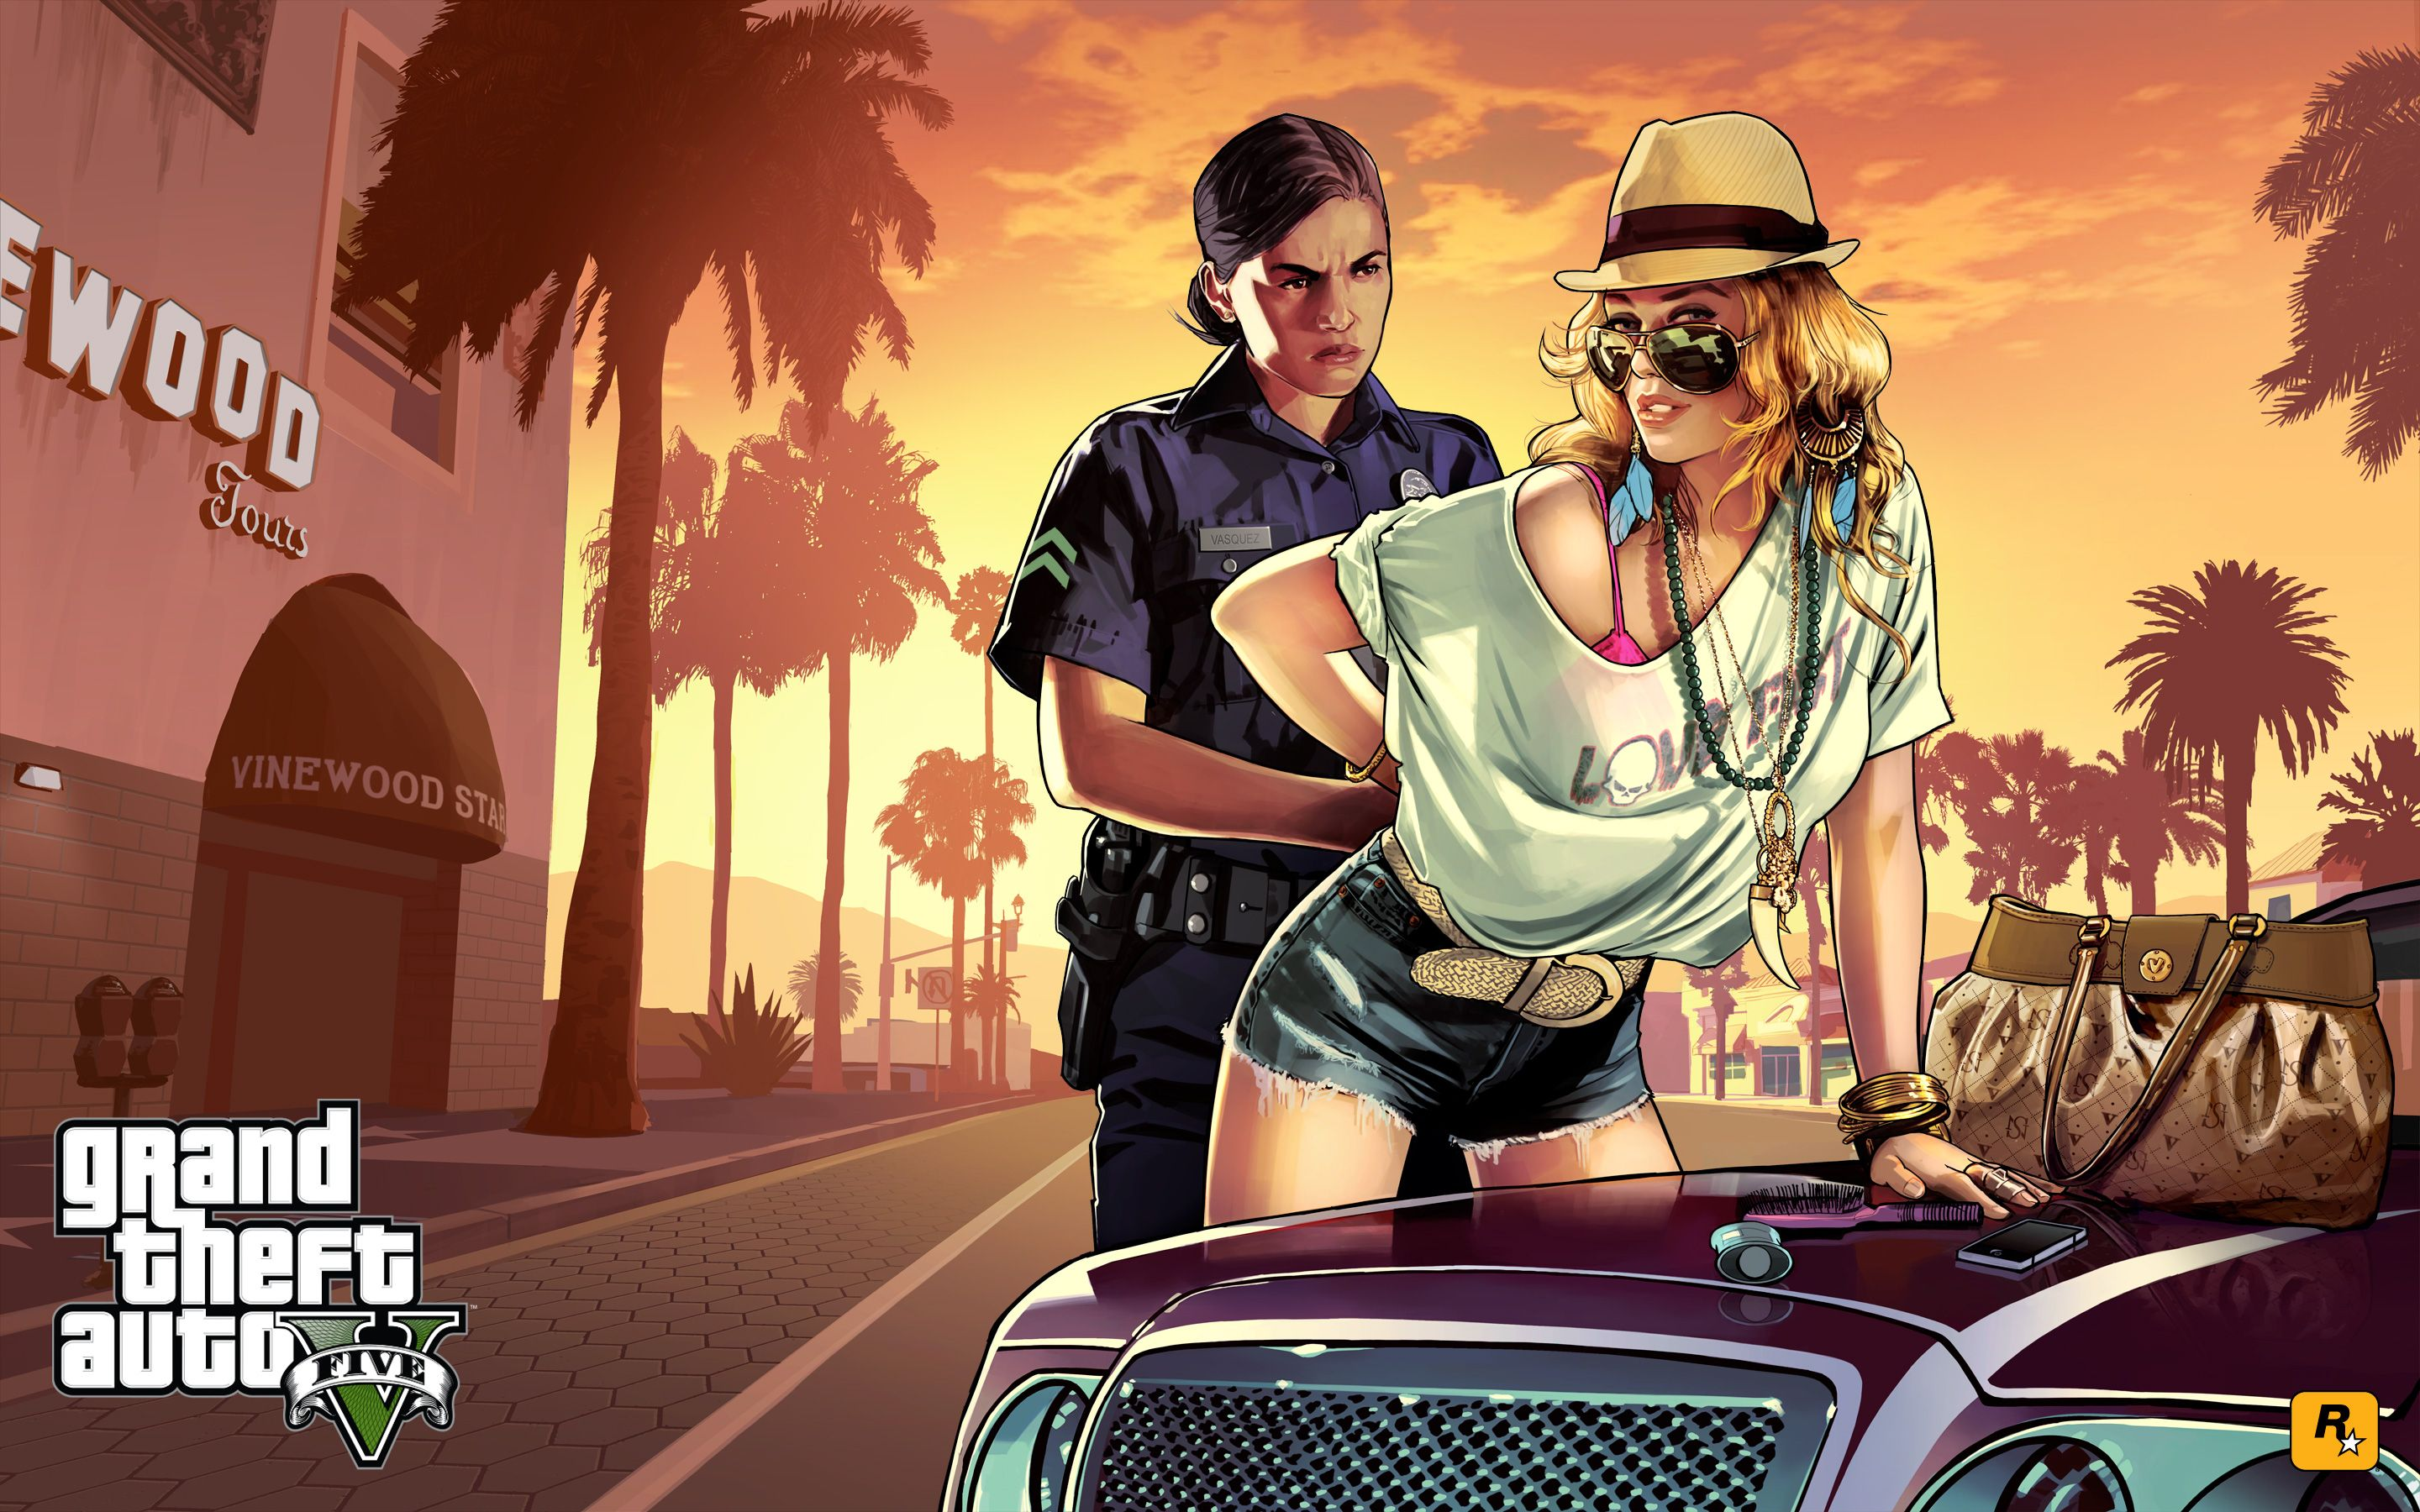 grand theft auto v high-resolution art collection | articles worth